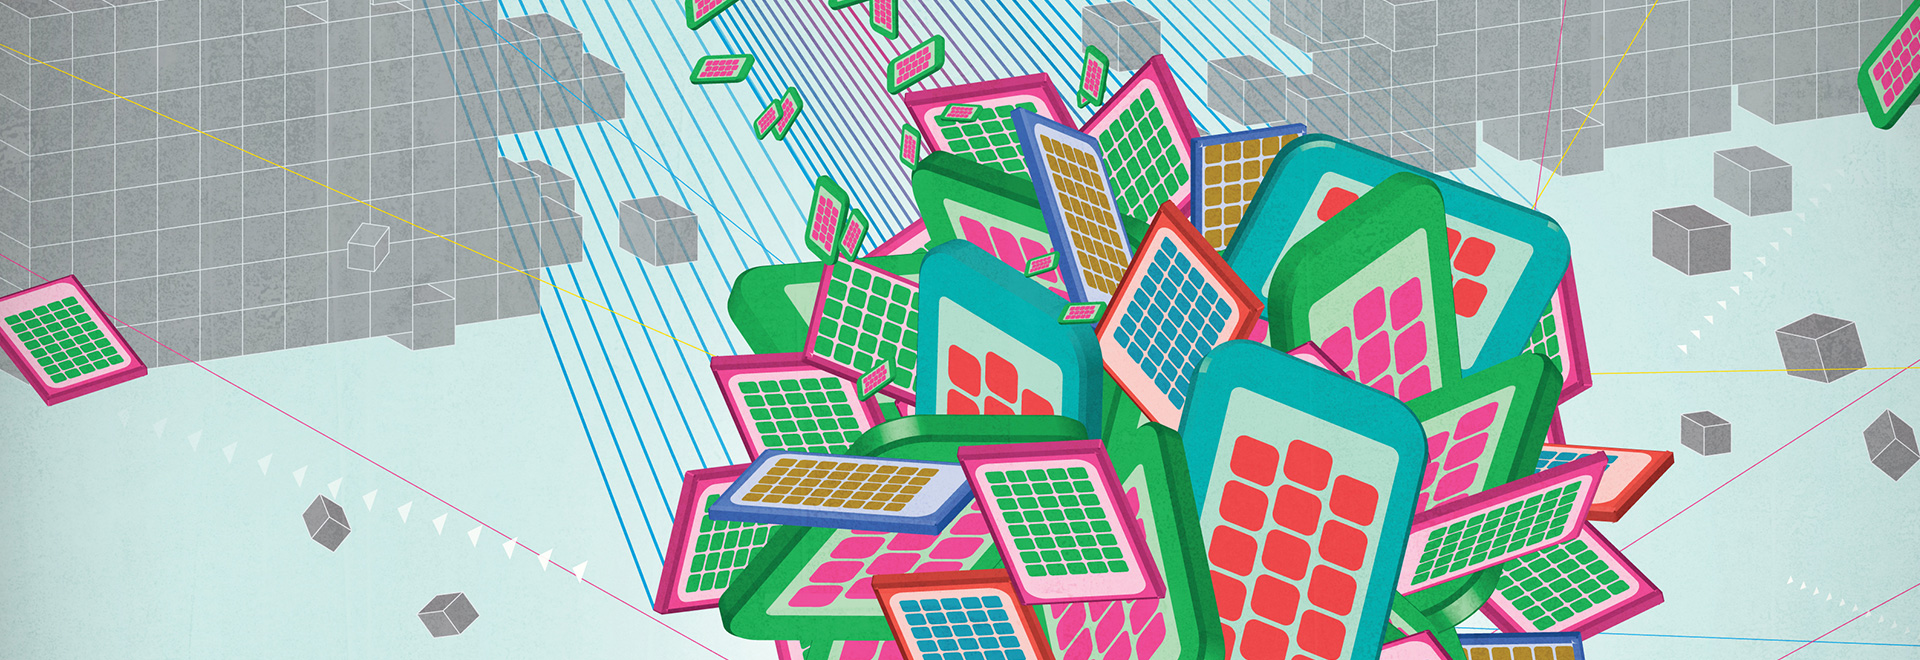 Open mobile: The growth era accelerates | Deloitte Insights